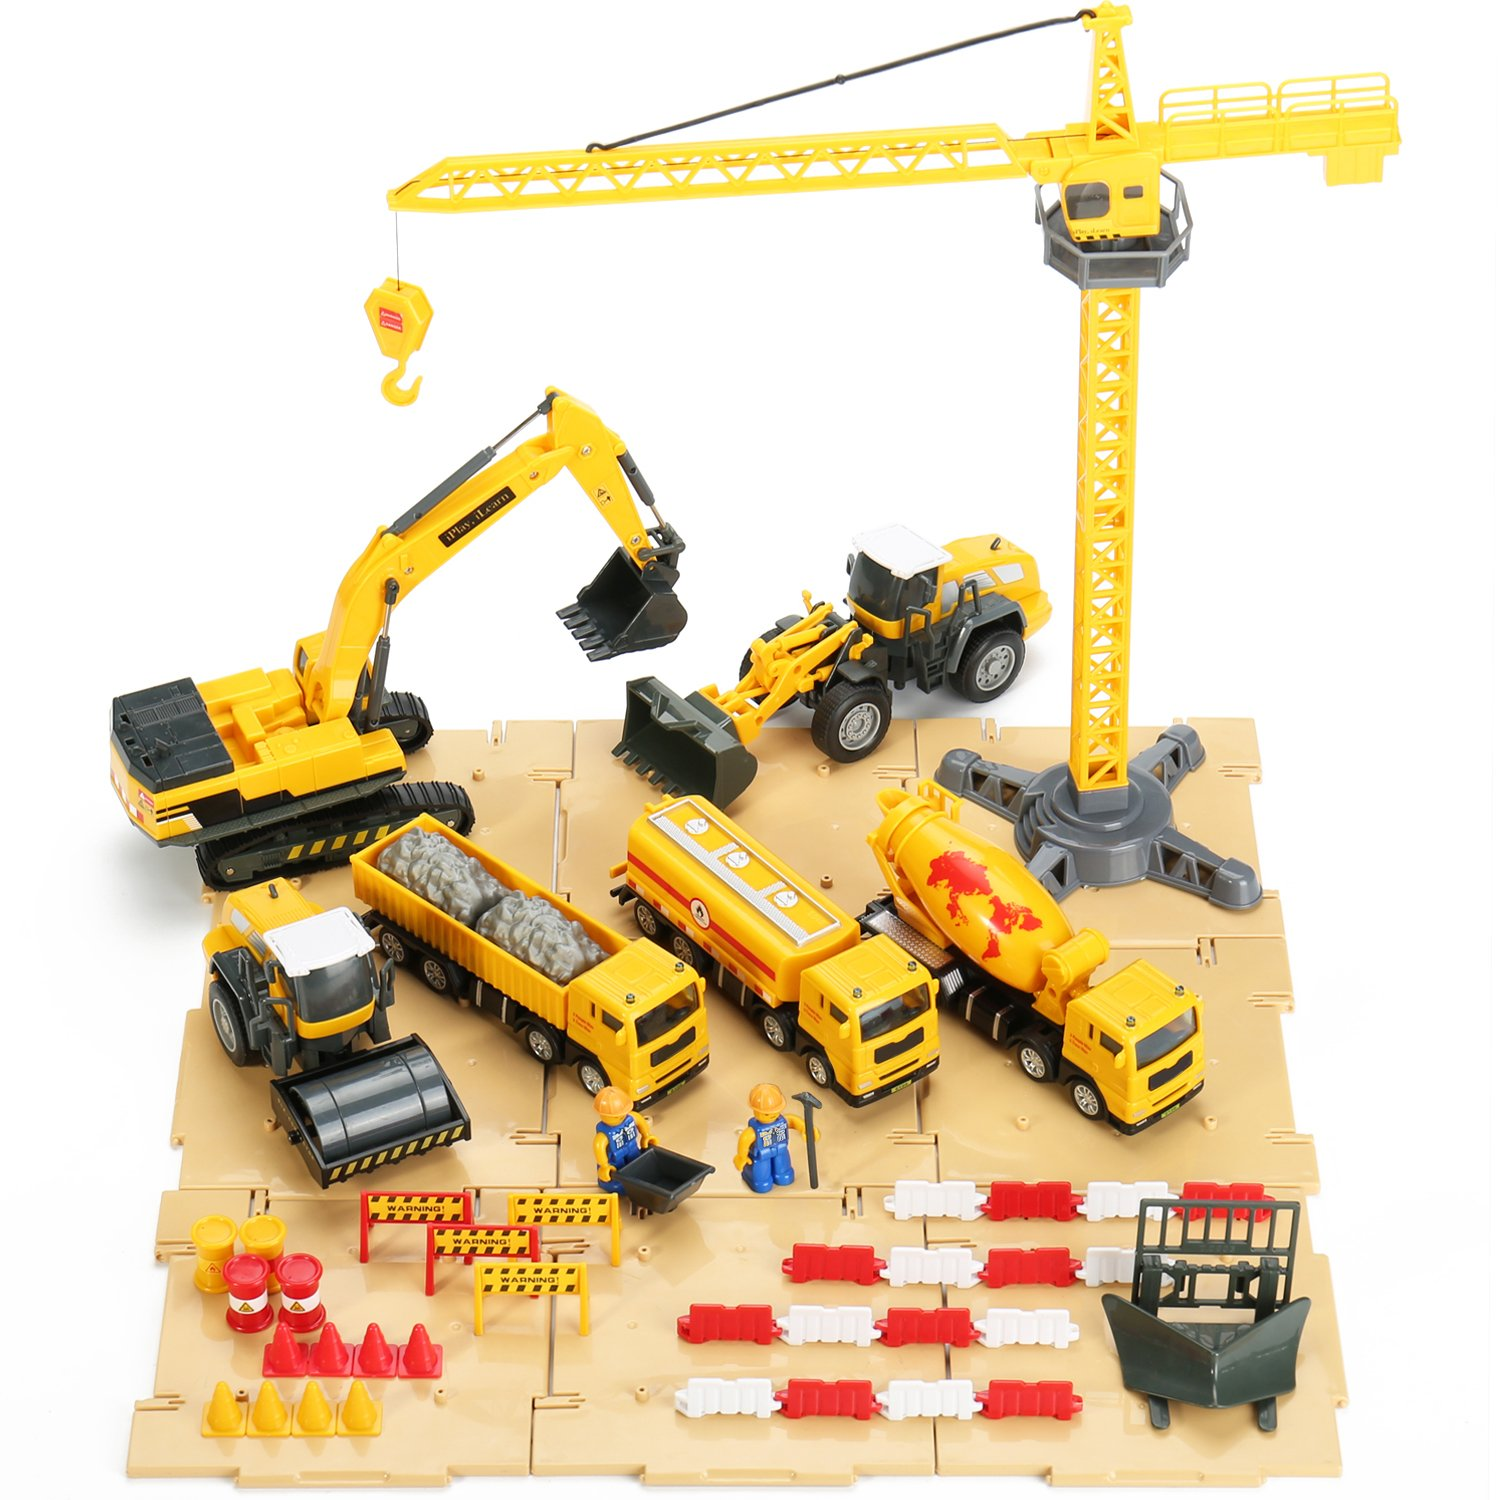 iPlay, iLearn Construction Site Vehicles Toy Set, Engineering Tractor Digger Playset, Crane, Dump, Trucks, Excavator, Steamroller for Age 3, 4, 5 Year Olds Toddlers, Boys, Girls, Kids, Child